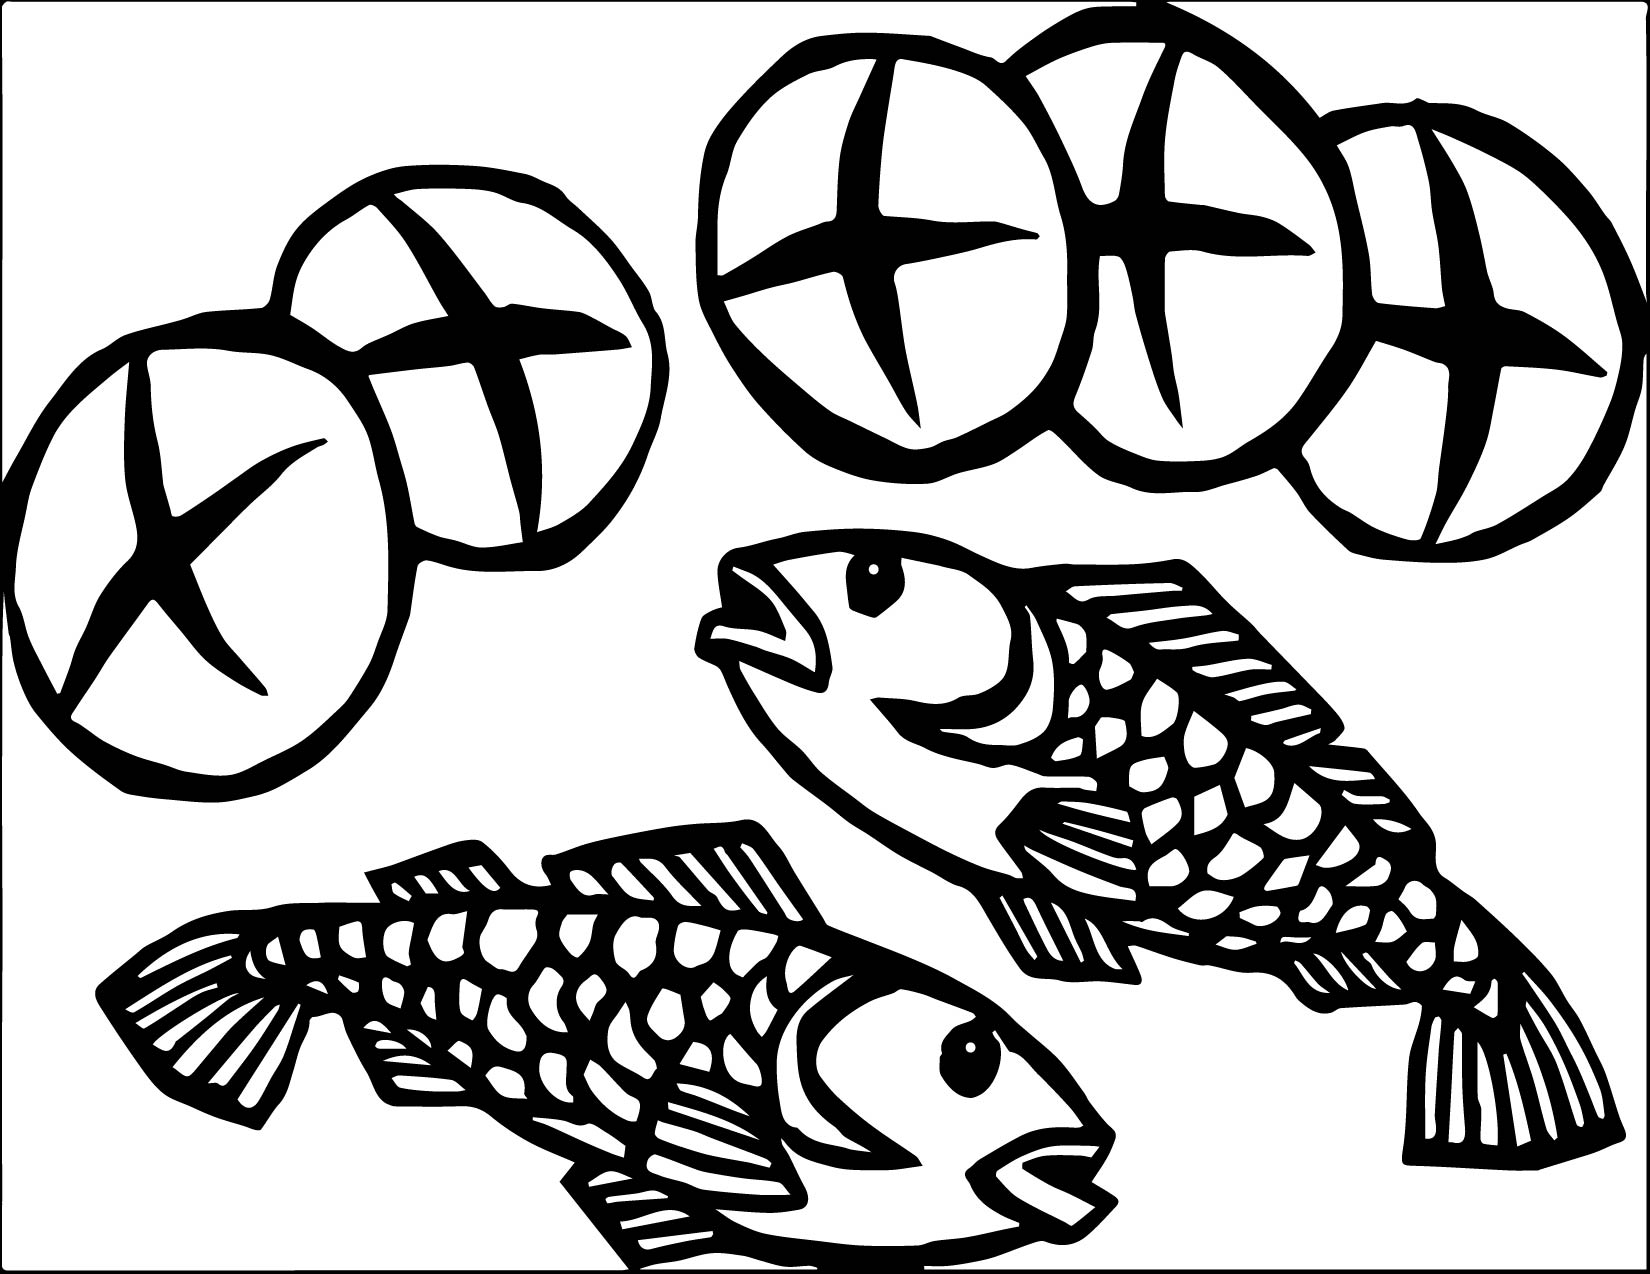 5 loaves and 2 fish coloring page - Fish Coloring Pages 2